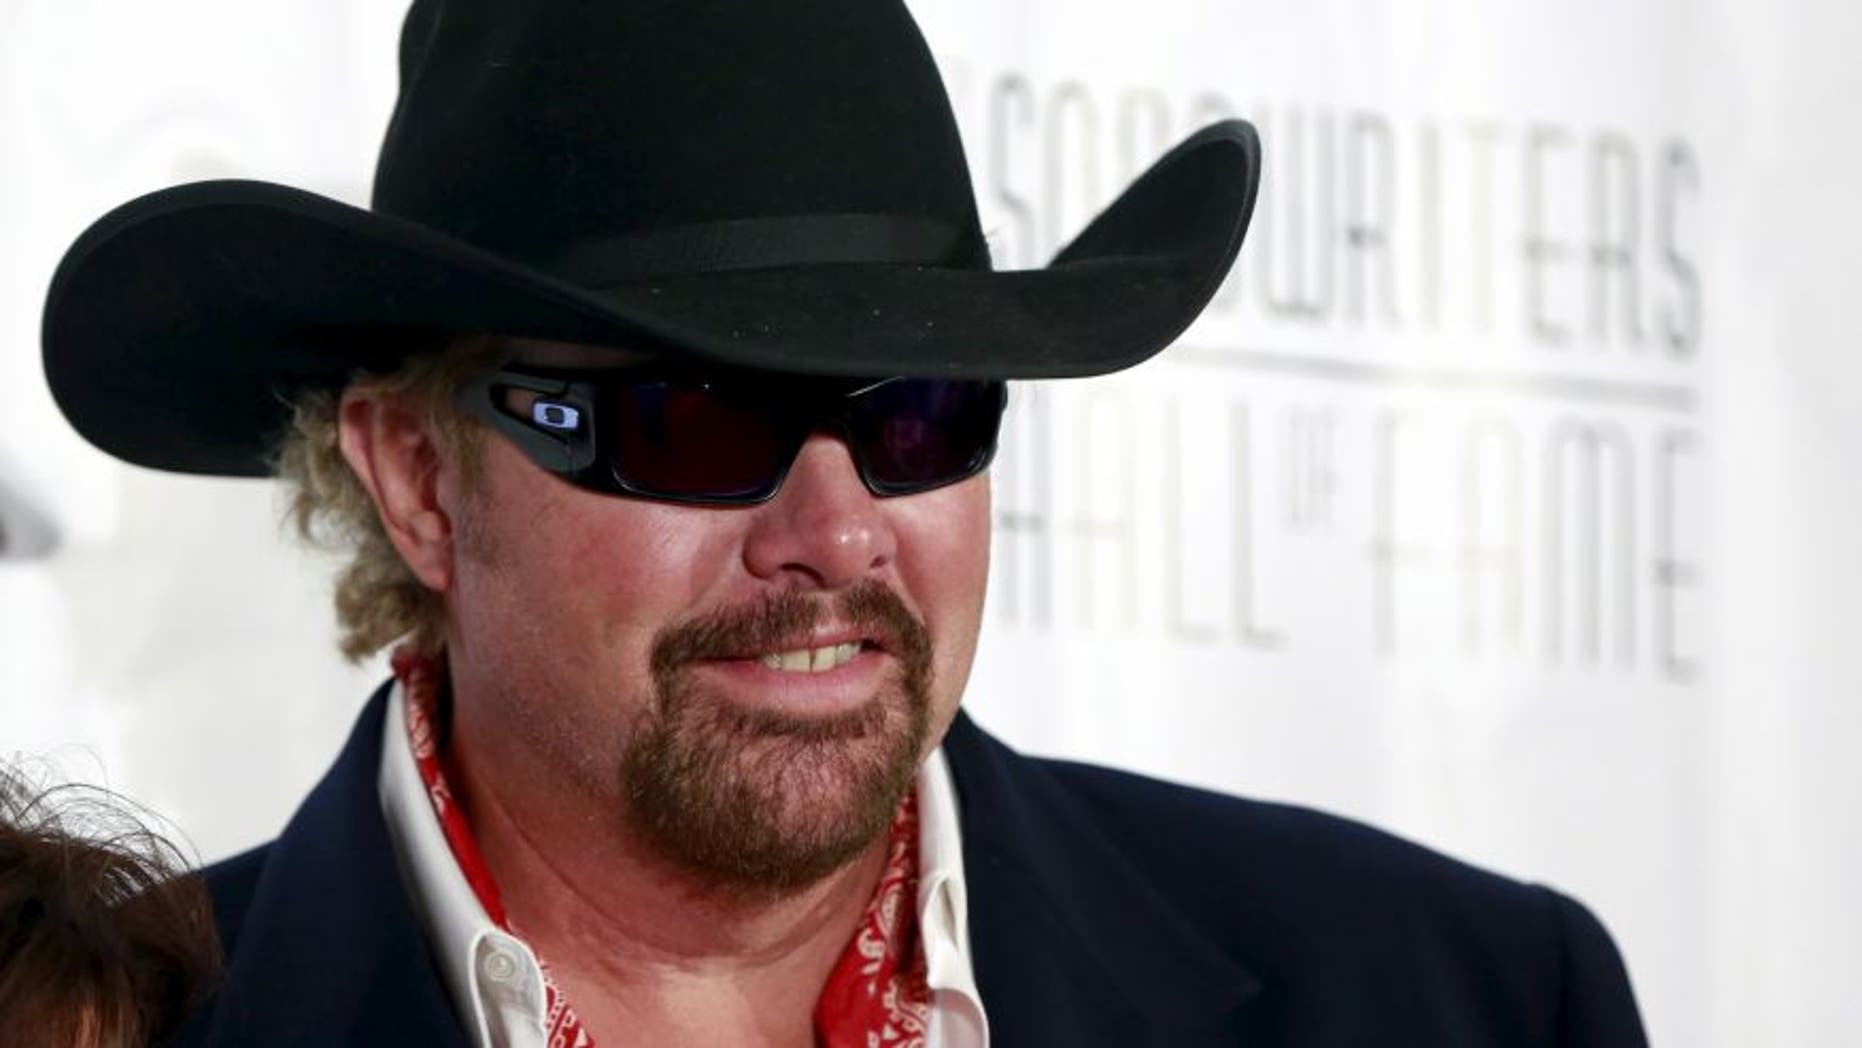 June 18, 2015. Country singer Toby Keith poses on the red carpet before the Songwriters Hall of Fame ceremony in New York. (Reuters)